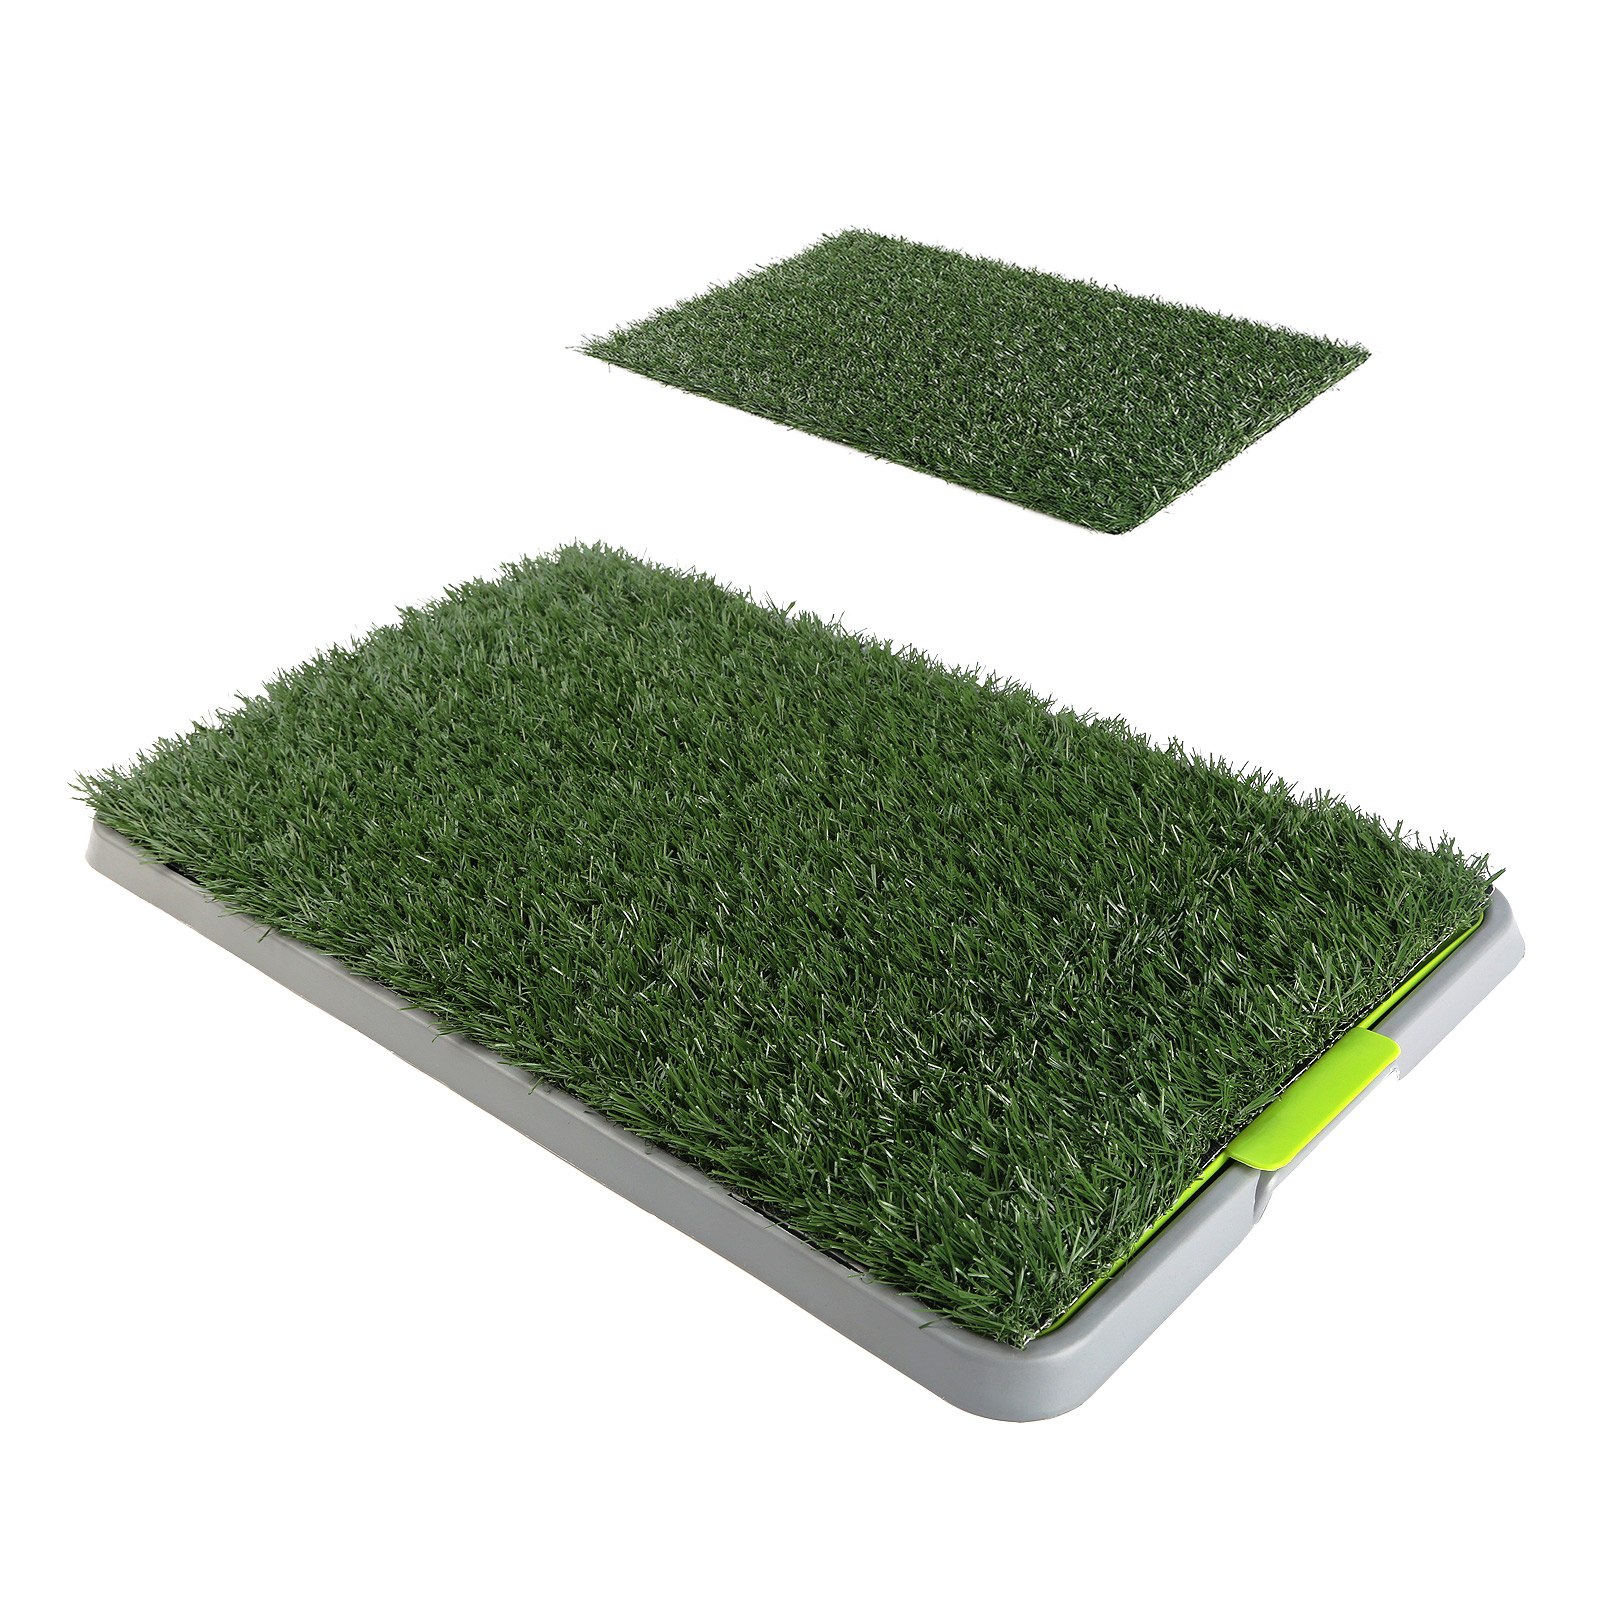 Pet Potty Training Pad Tray 69 x 43cm - 2 Grass Mat